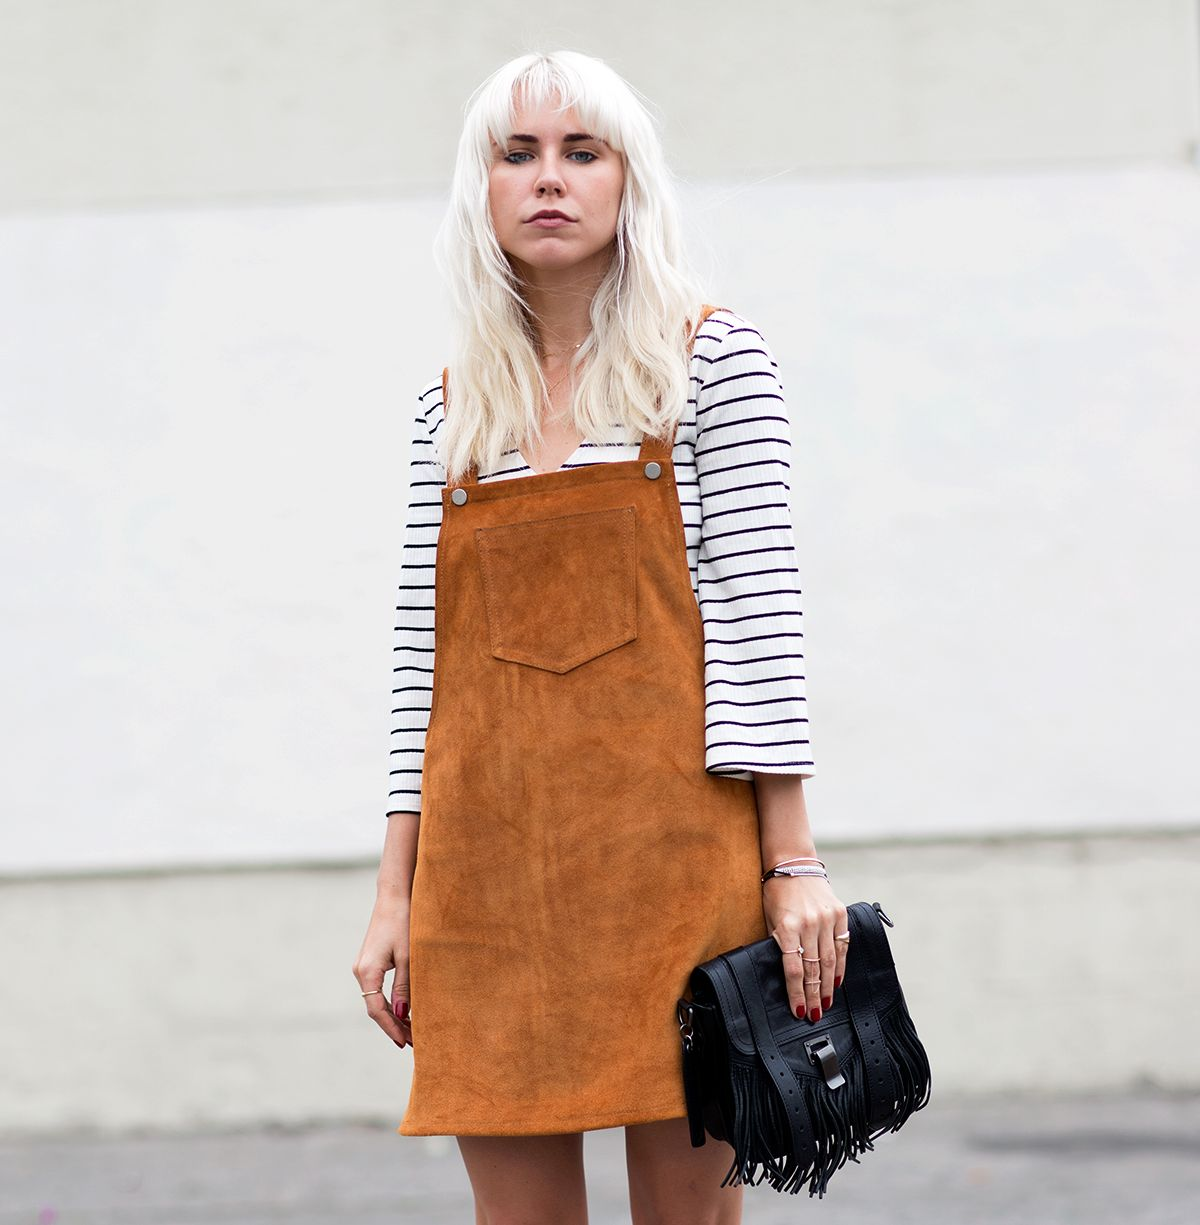 Suede overall dress with a striped tee and Proenza clutch.